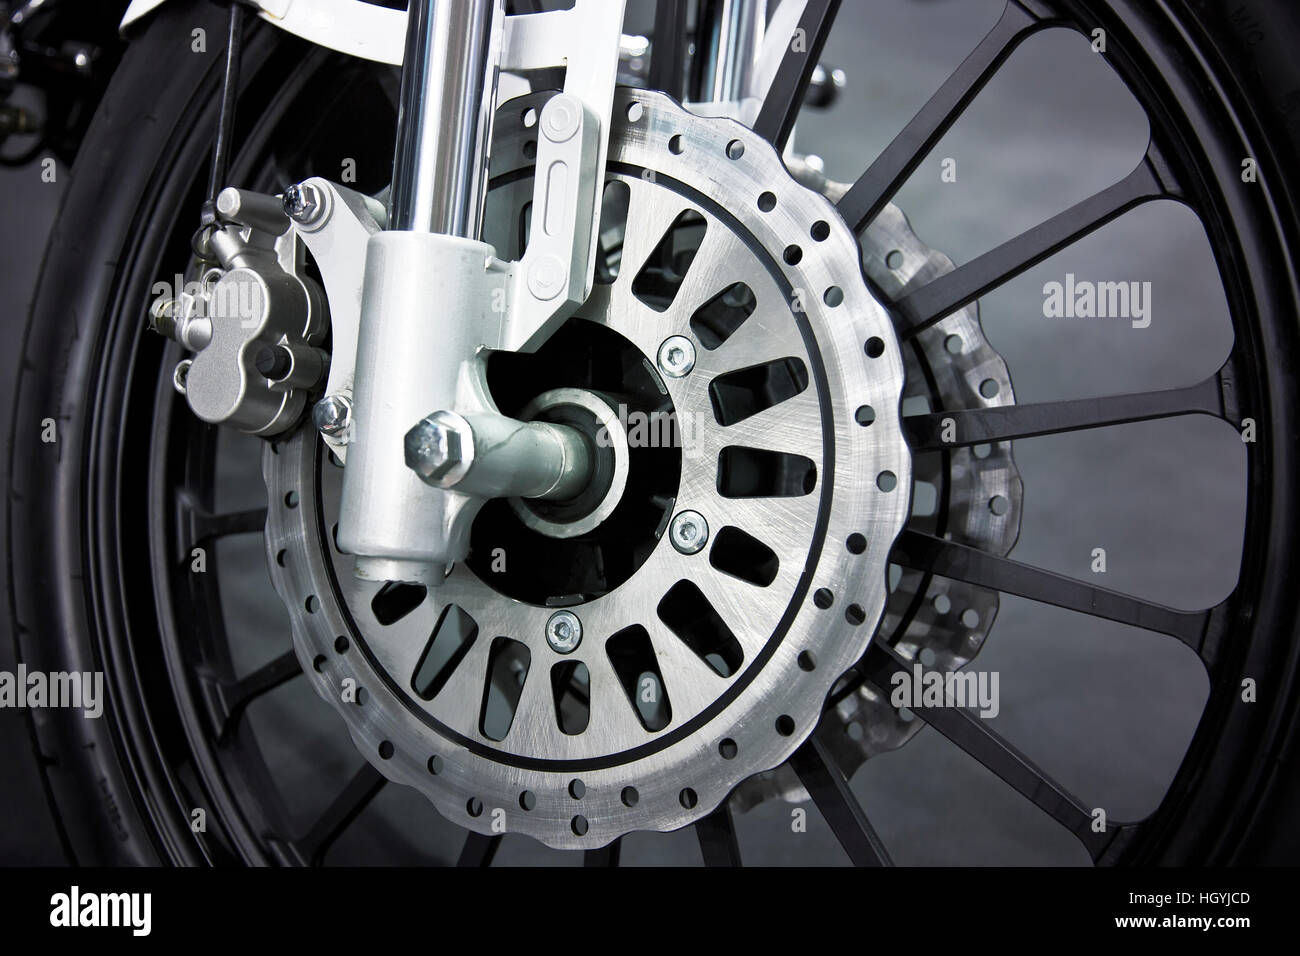 A Wheel Of A Motorcycle With Disk Brake Stock Photo Alamy